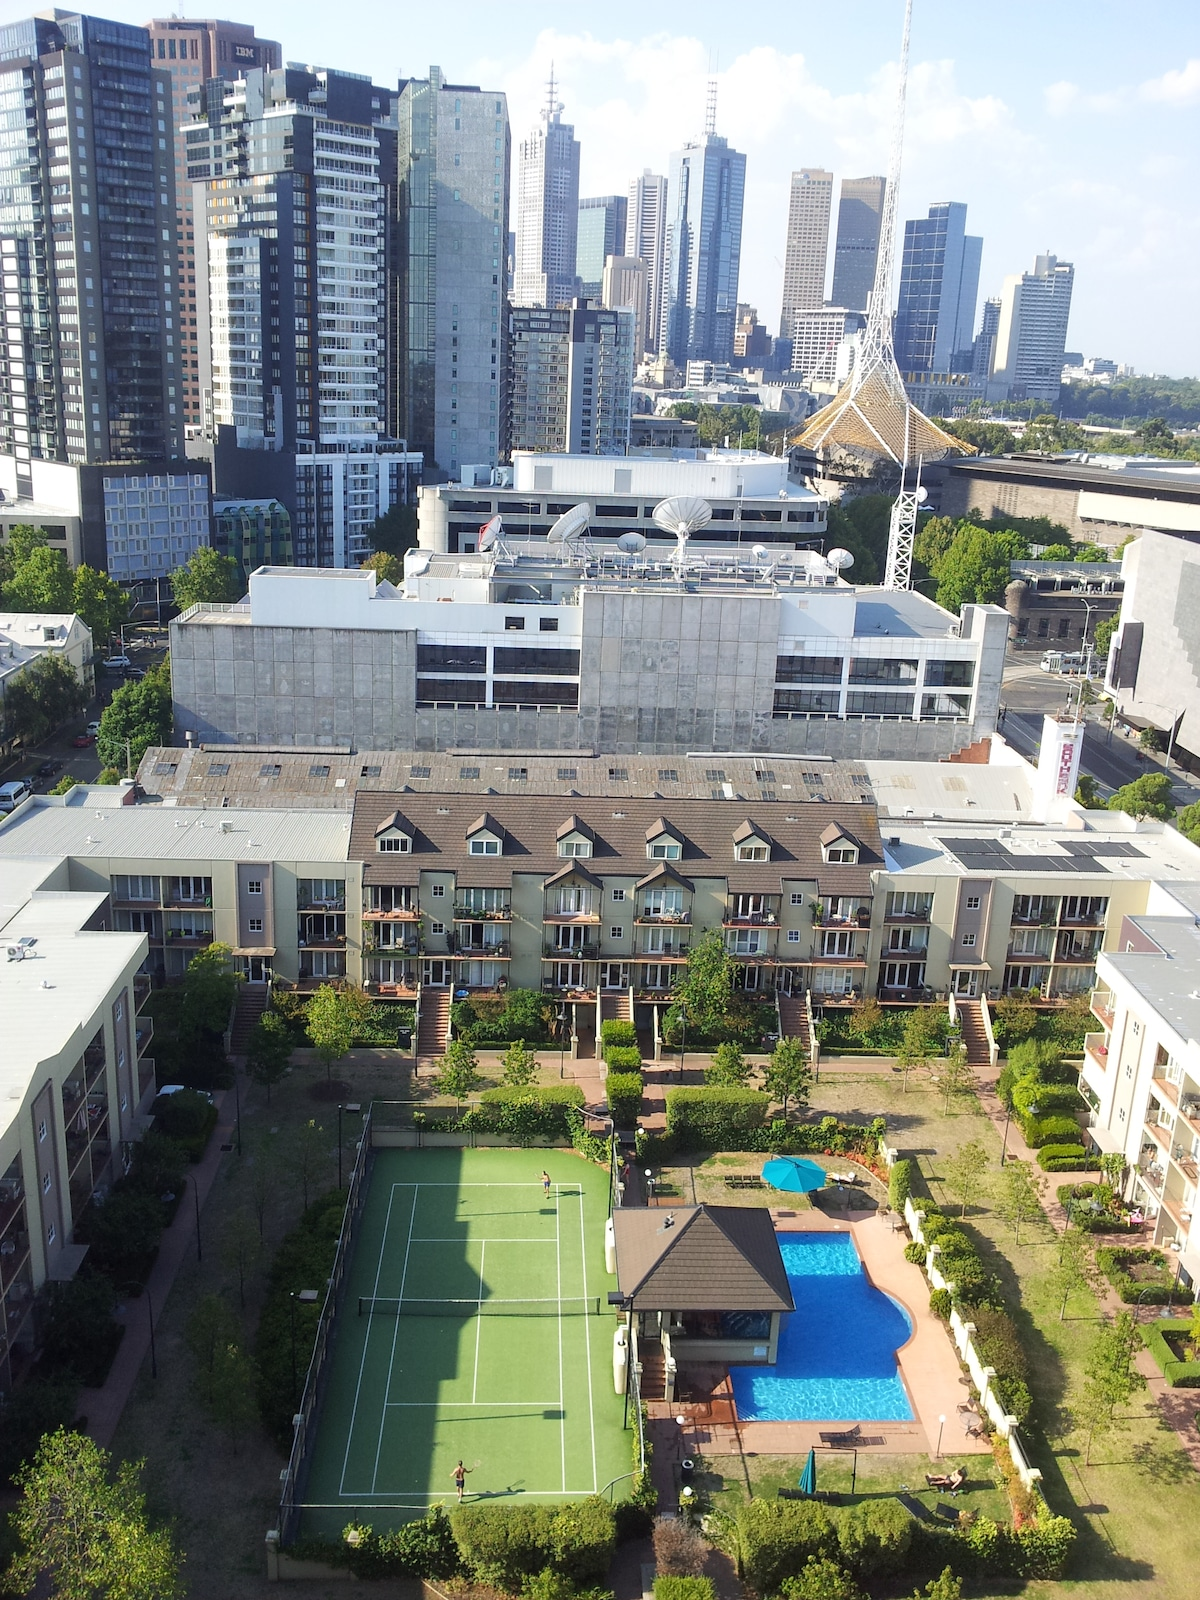 A bird's eye view looking down on our complex - walking distance to Melbourne's attractions